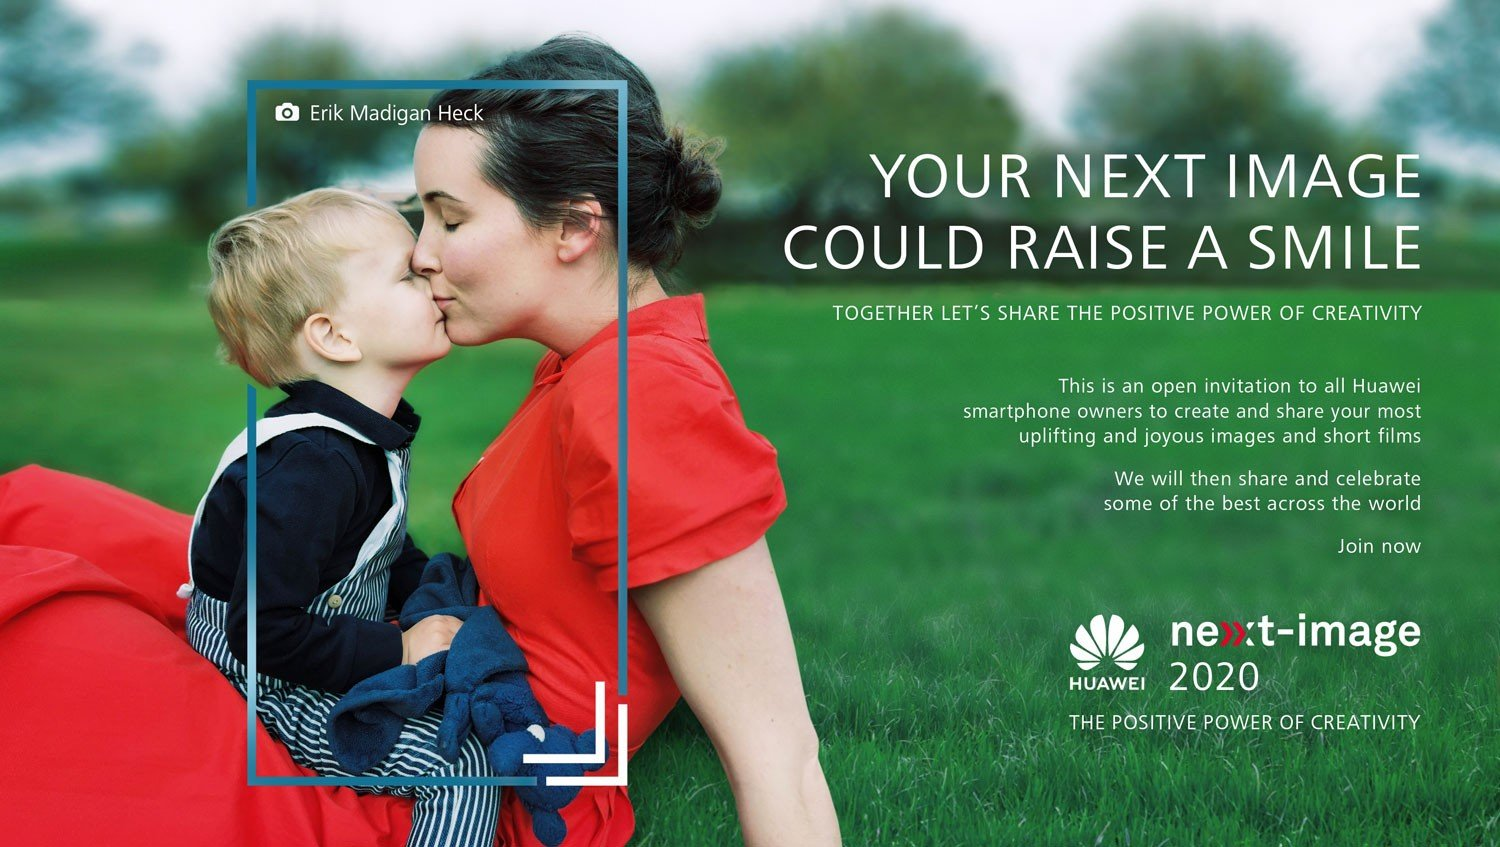 Huawei has announced the NEXT-IMAGE 2020 competition